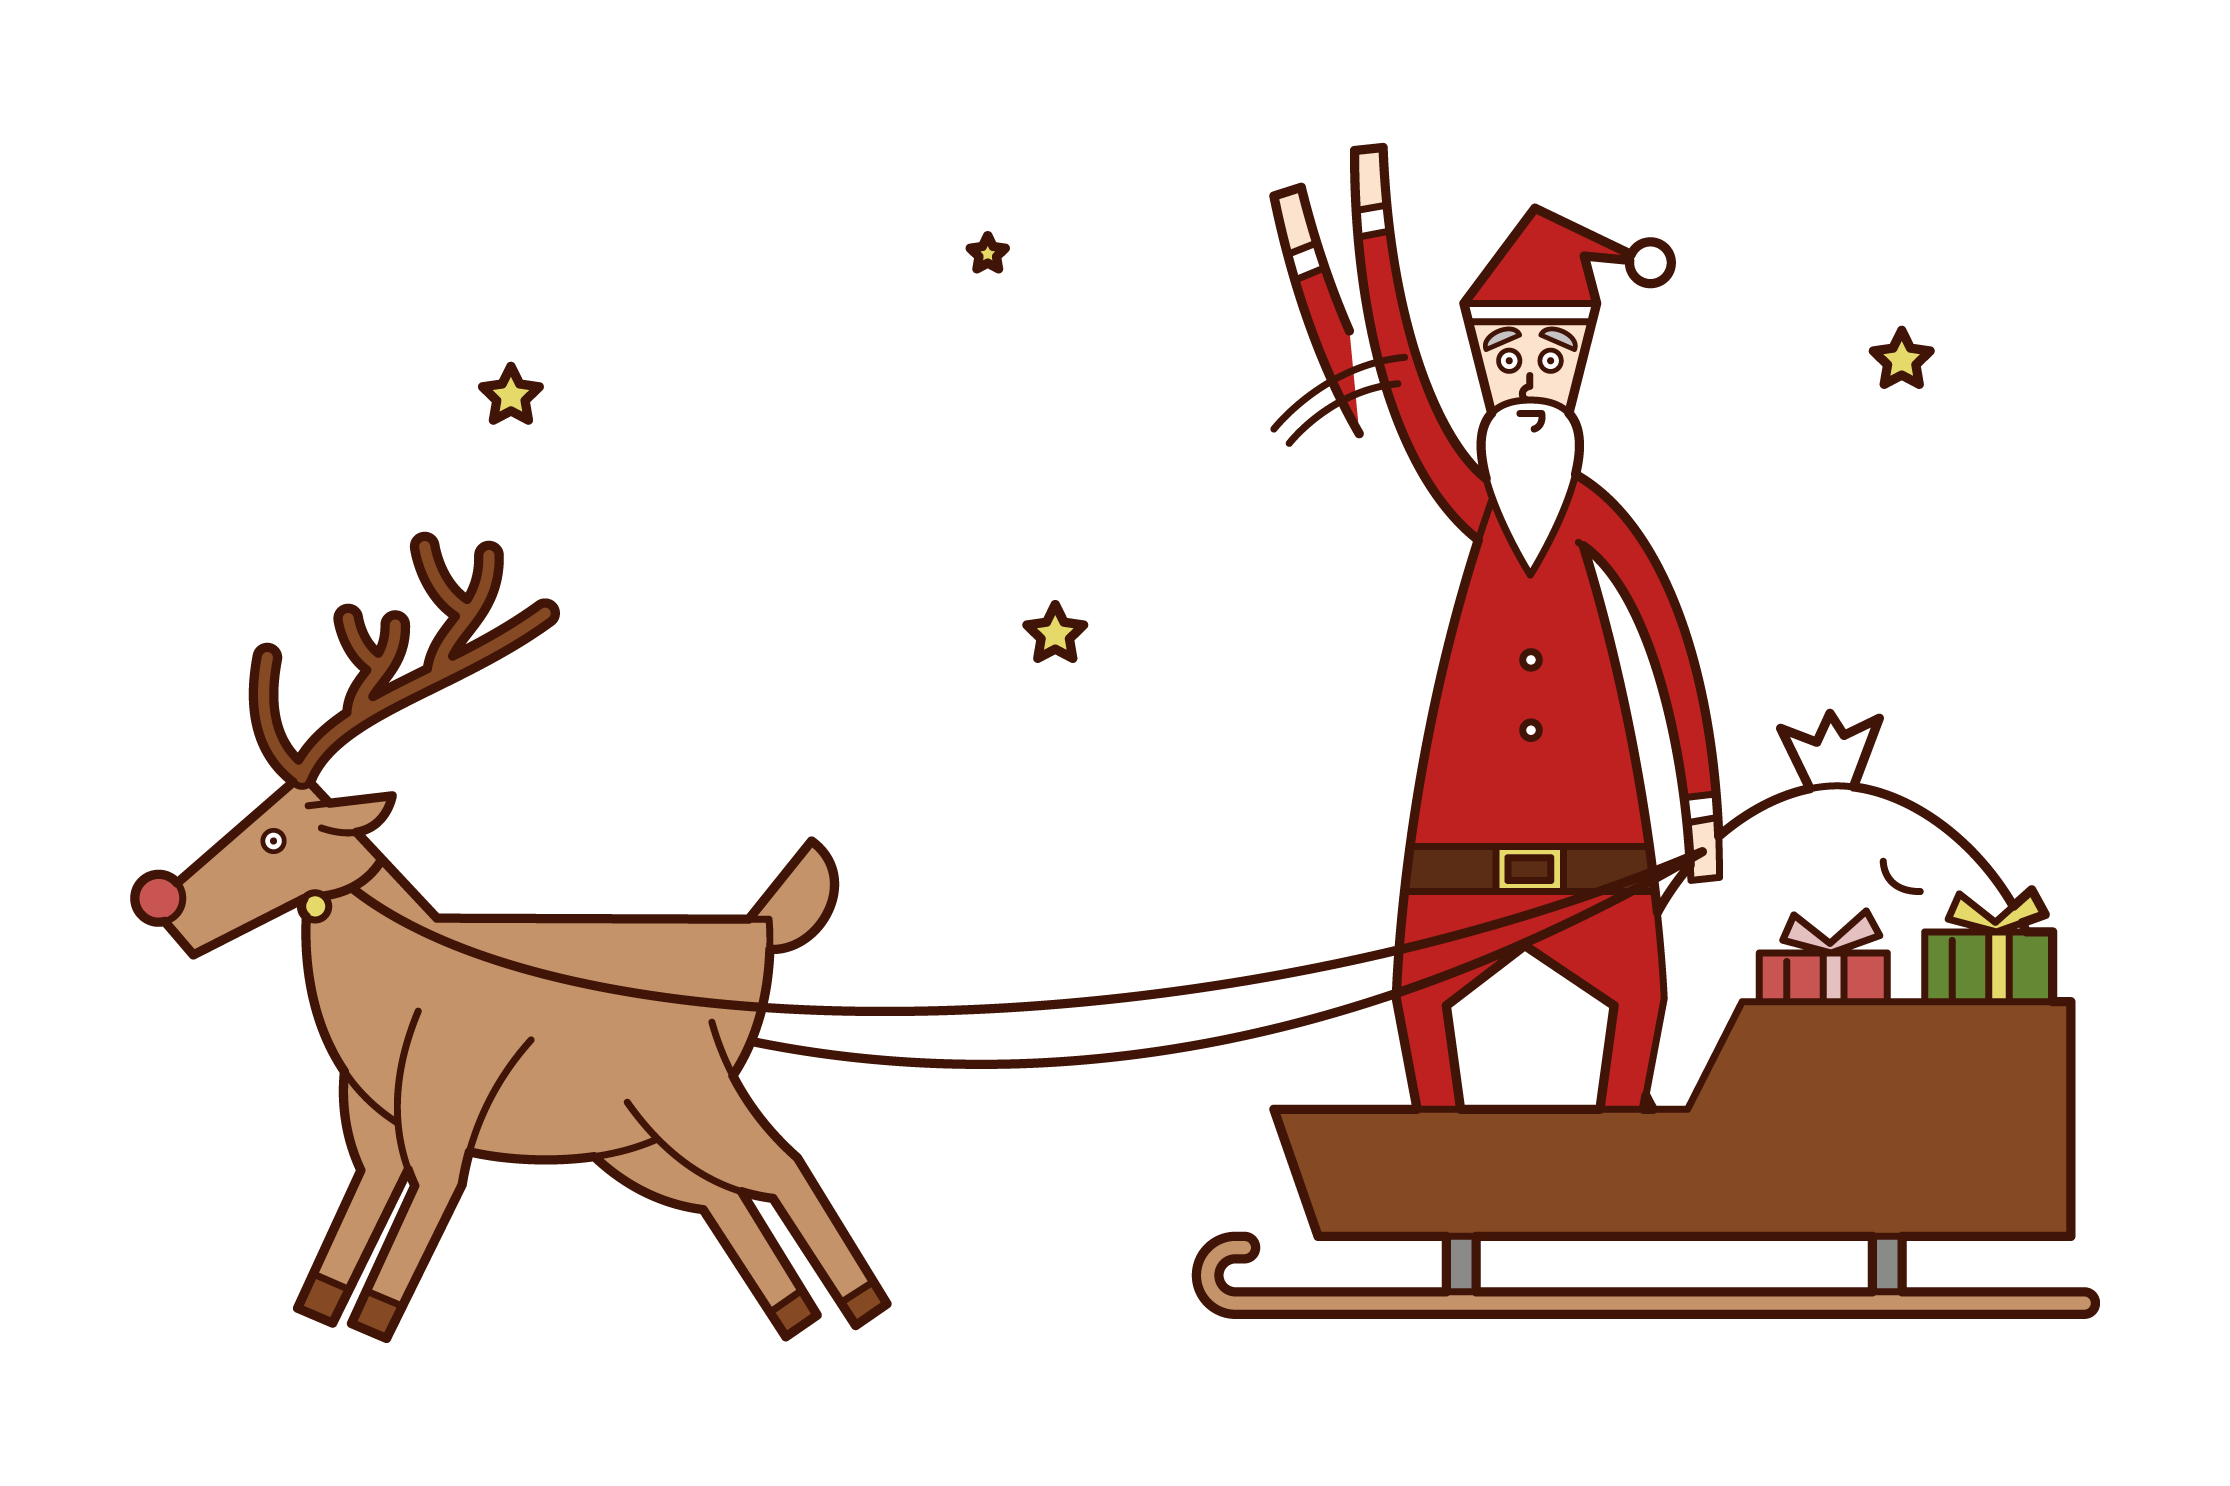 Illustration of Santa Claus waved from the top of a sled